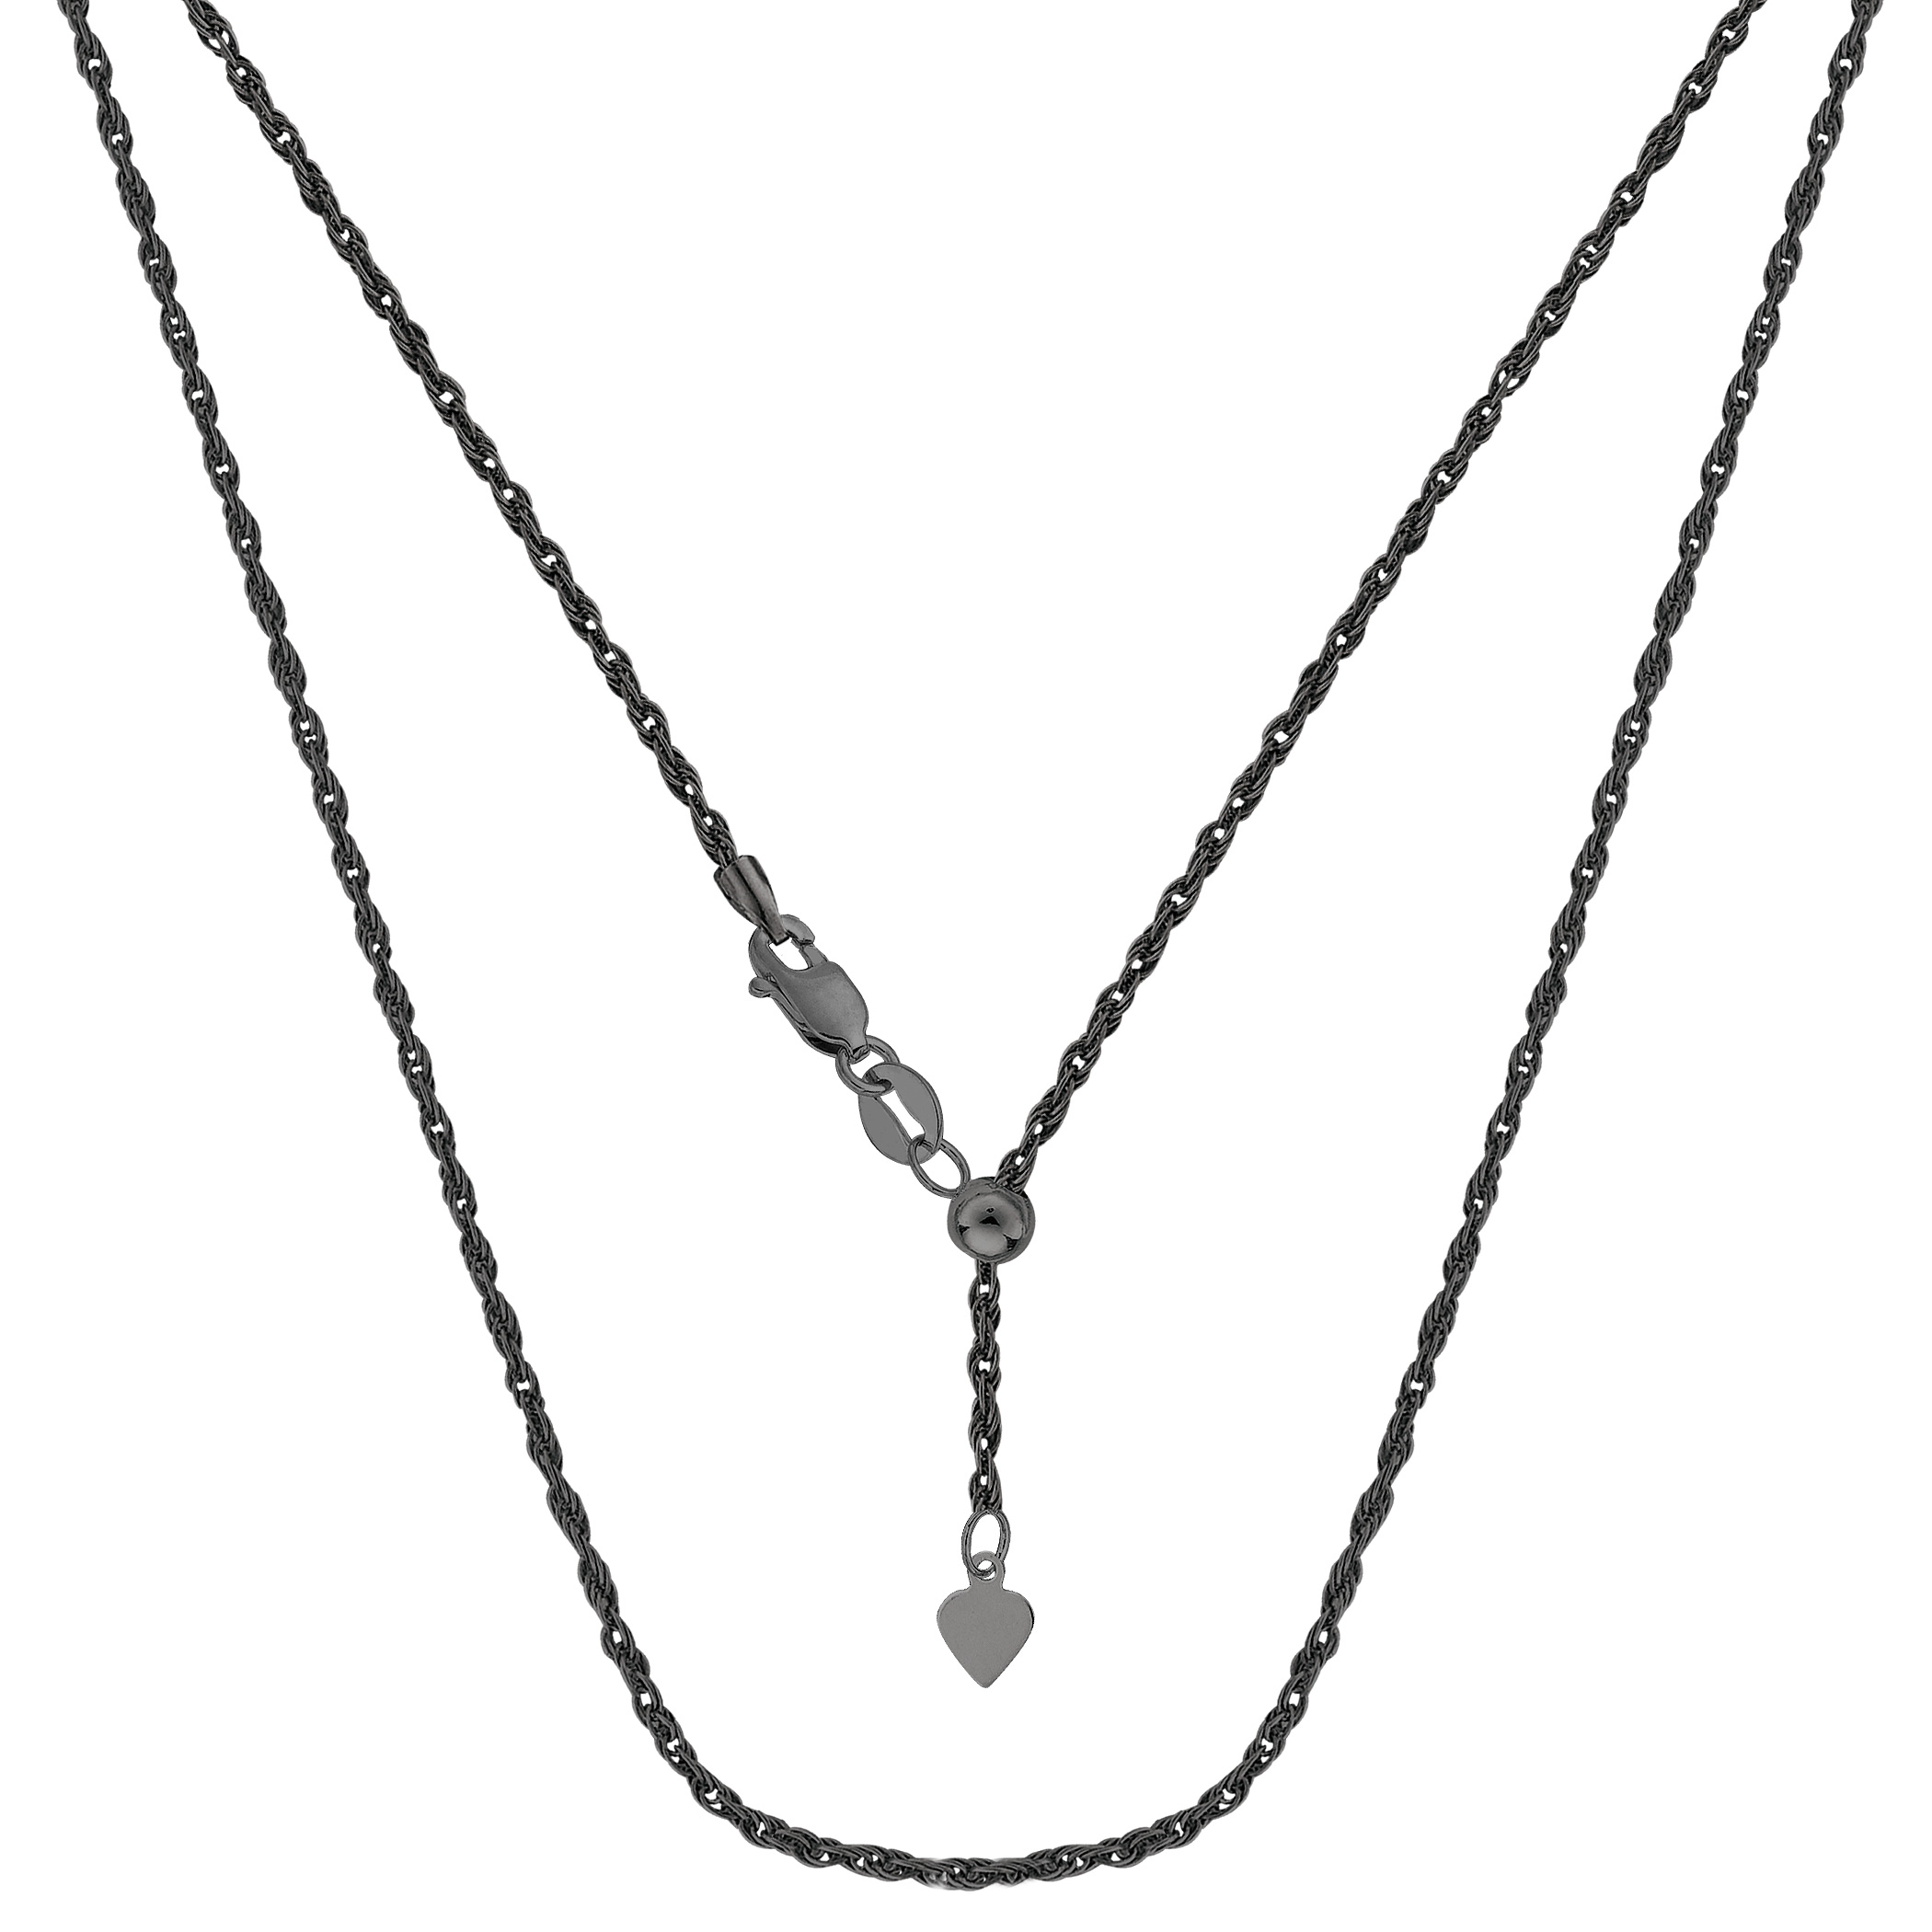 Sterling Silver Black Ruthenium Plated 22  Sliding Adjustable Rope Chain Necklace, 1.5mm Using it by itself or combining it with charms and pendants, this 22 inch long adjustable rope style chain is a perfect addition to any jewelry fashionista collection. This Sterling Silver chain is black Ruthenium plated to a get that dark antique look.